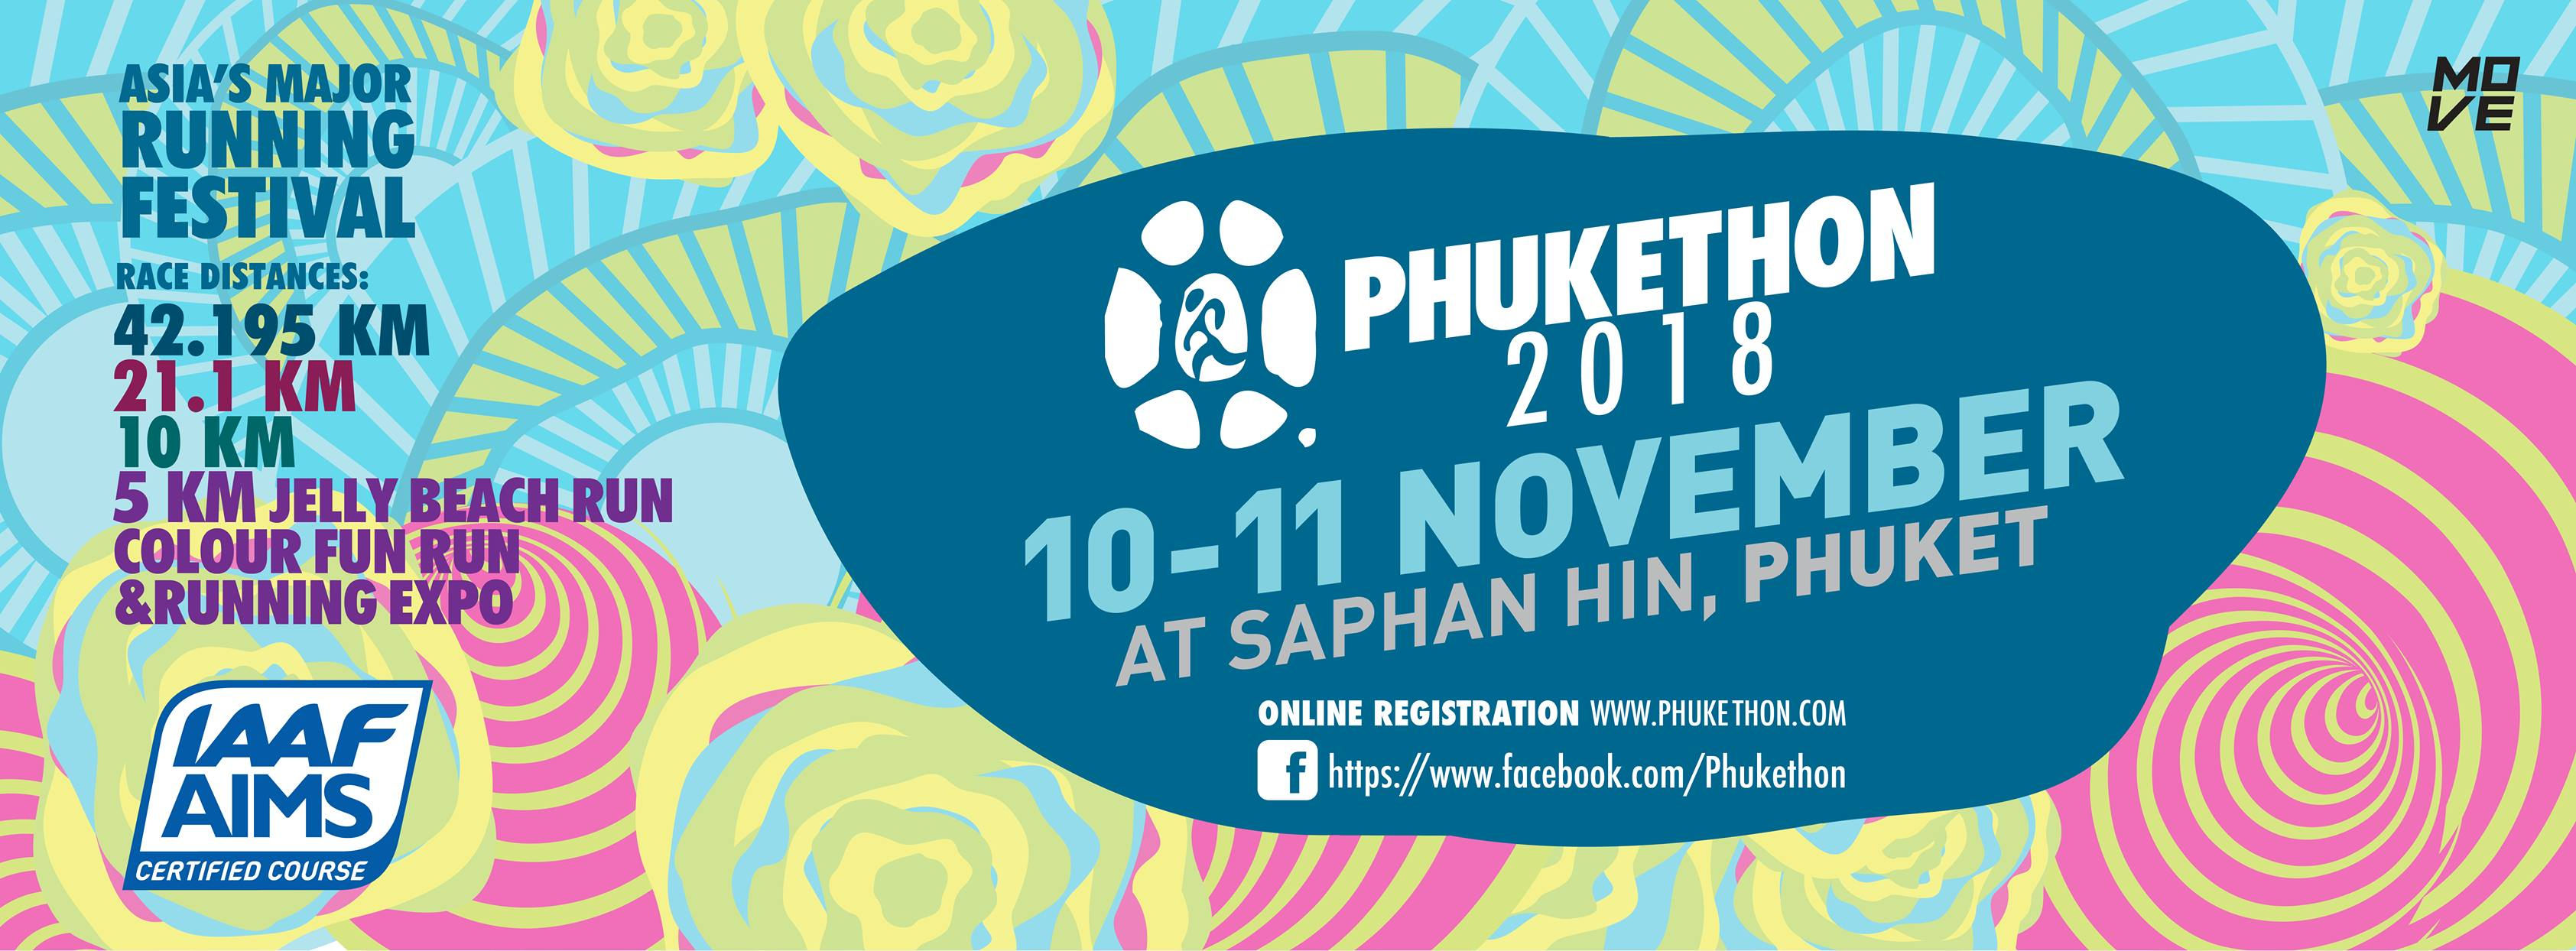 Phukethon International Marathon 2018 - Race Connections